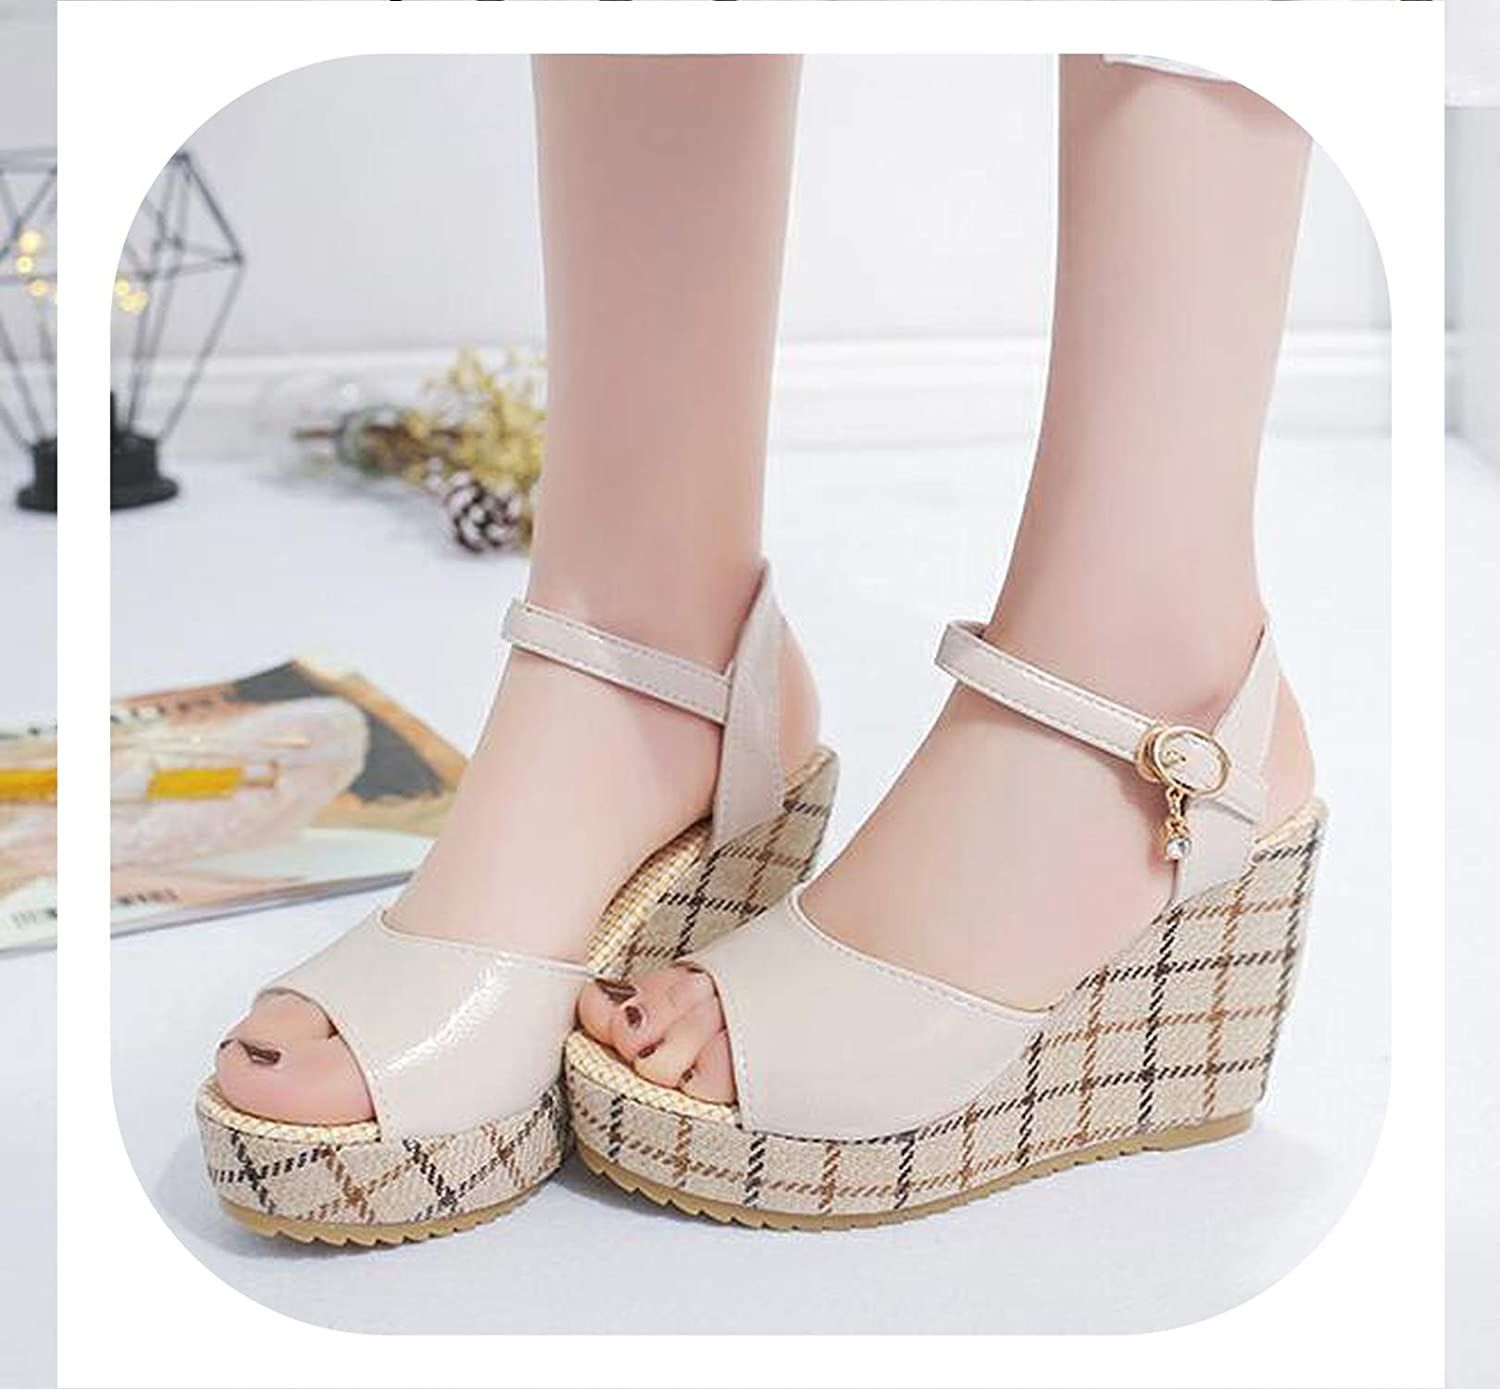 HANBINGPO Women Sandals 2019 Summer Pu Leather Gladiator Wedges Slides Peep Toe Gingham Solid Casual shoes